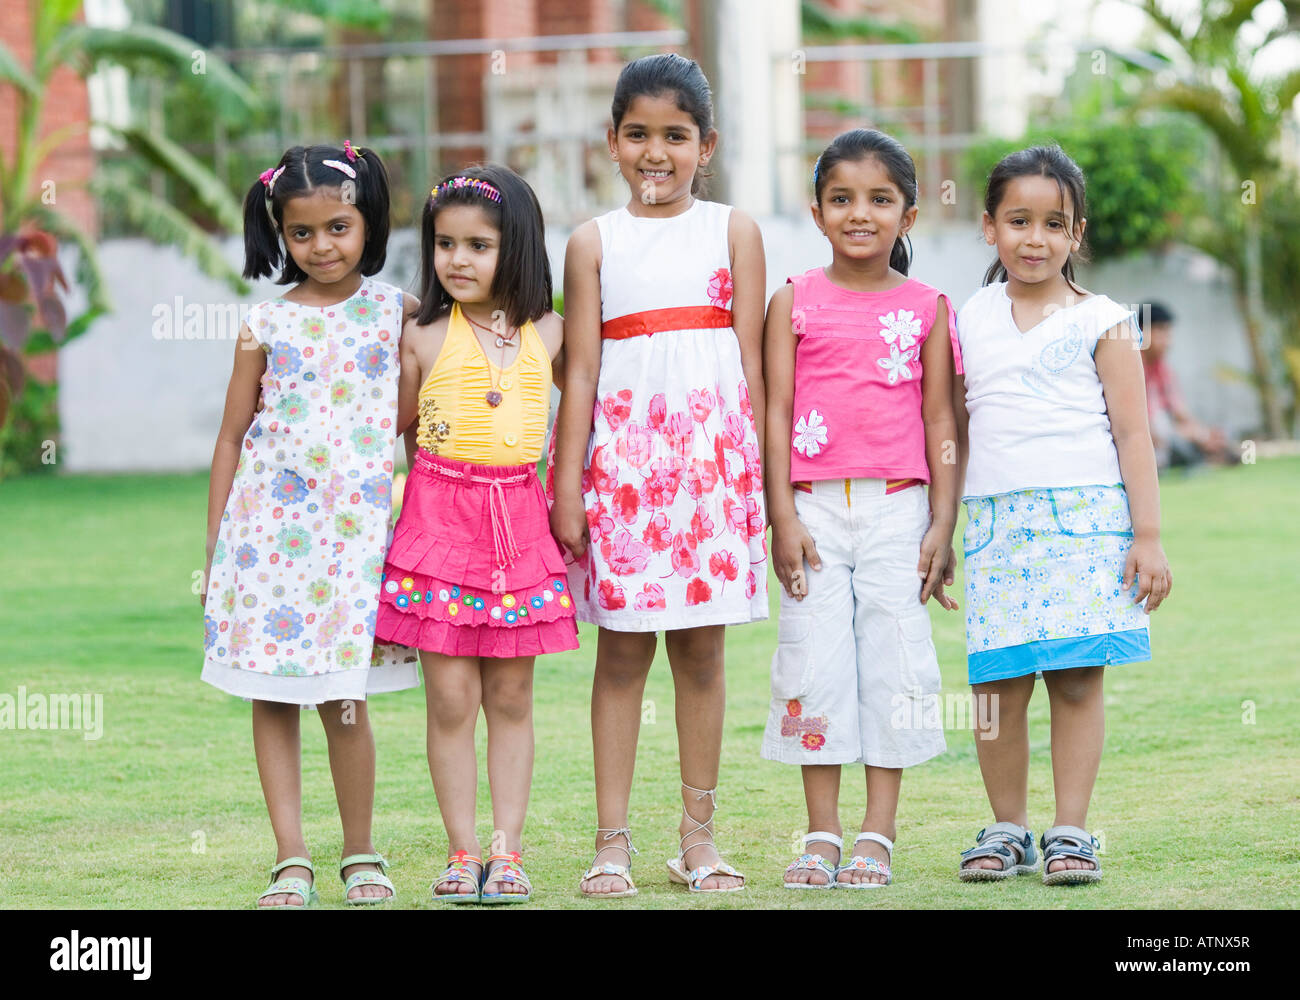 Five girls standing in a lawn and smiling - Stock Image